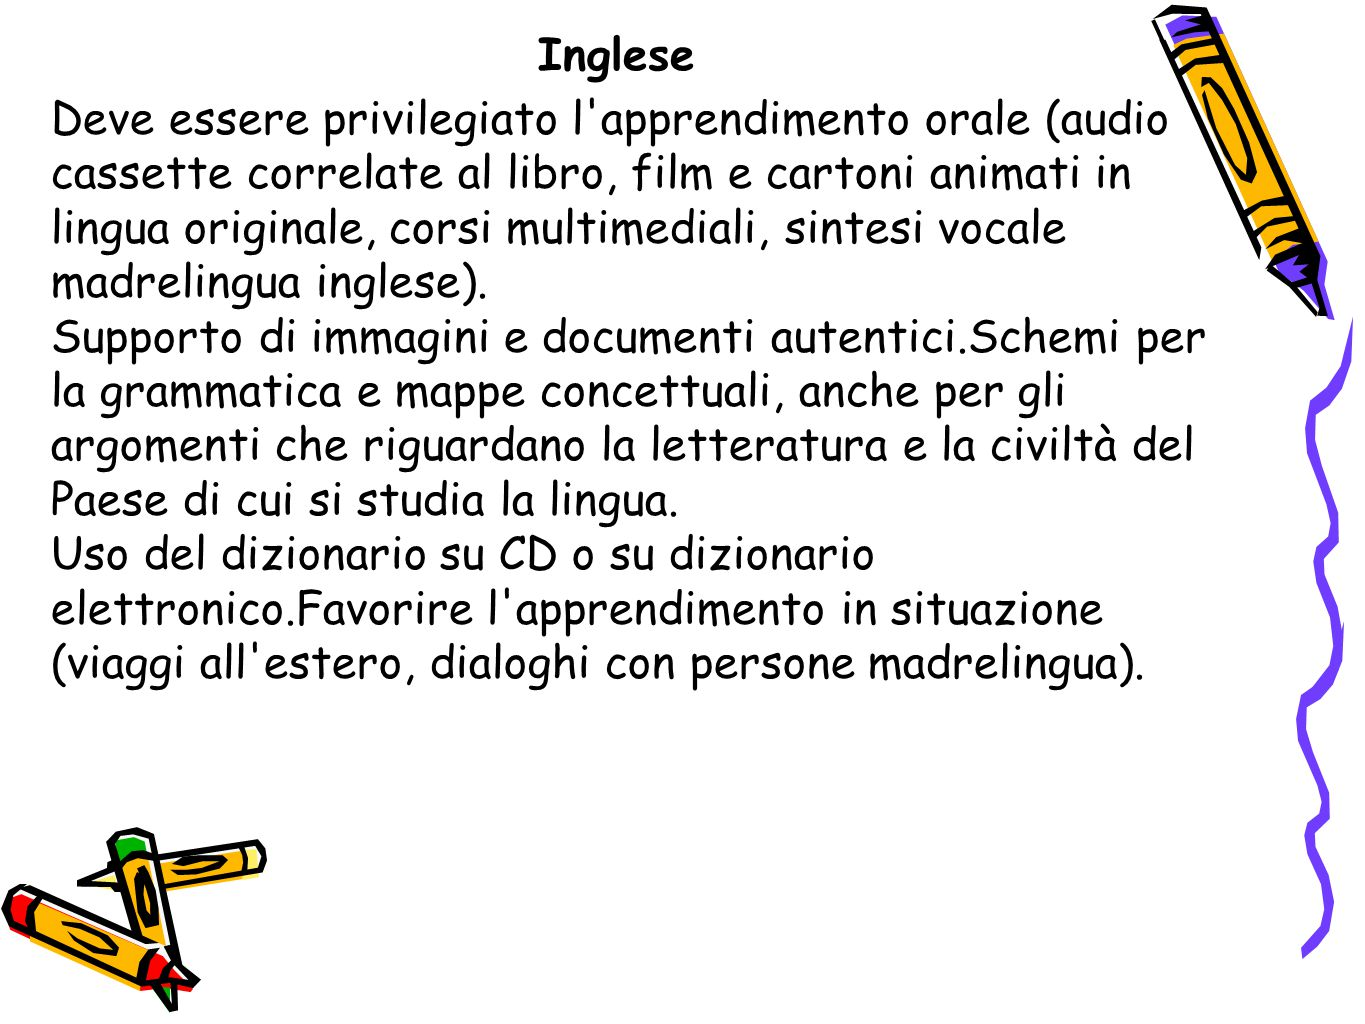 Inglese Deve essere privilegiato l'apprendimento orale (audio cassette correlate al libro, film e cartoni animati in lingua originale, corsi multimedi